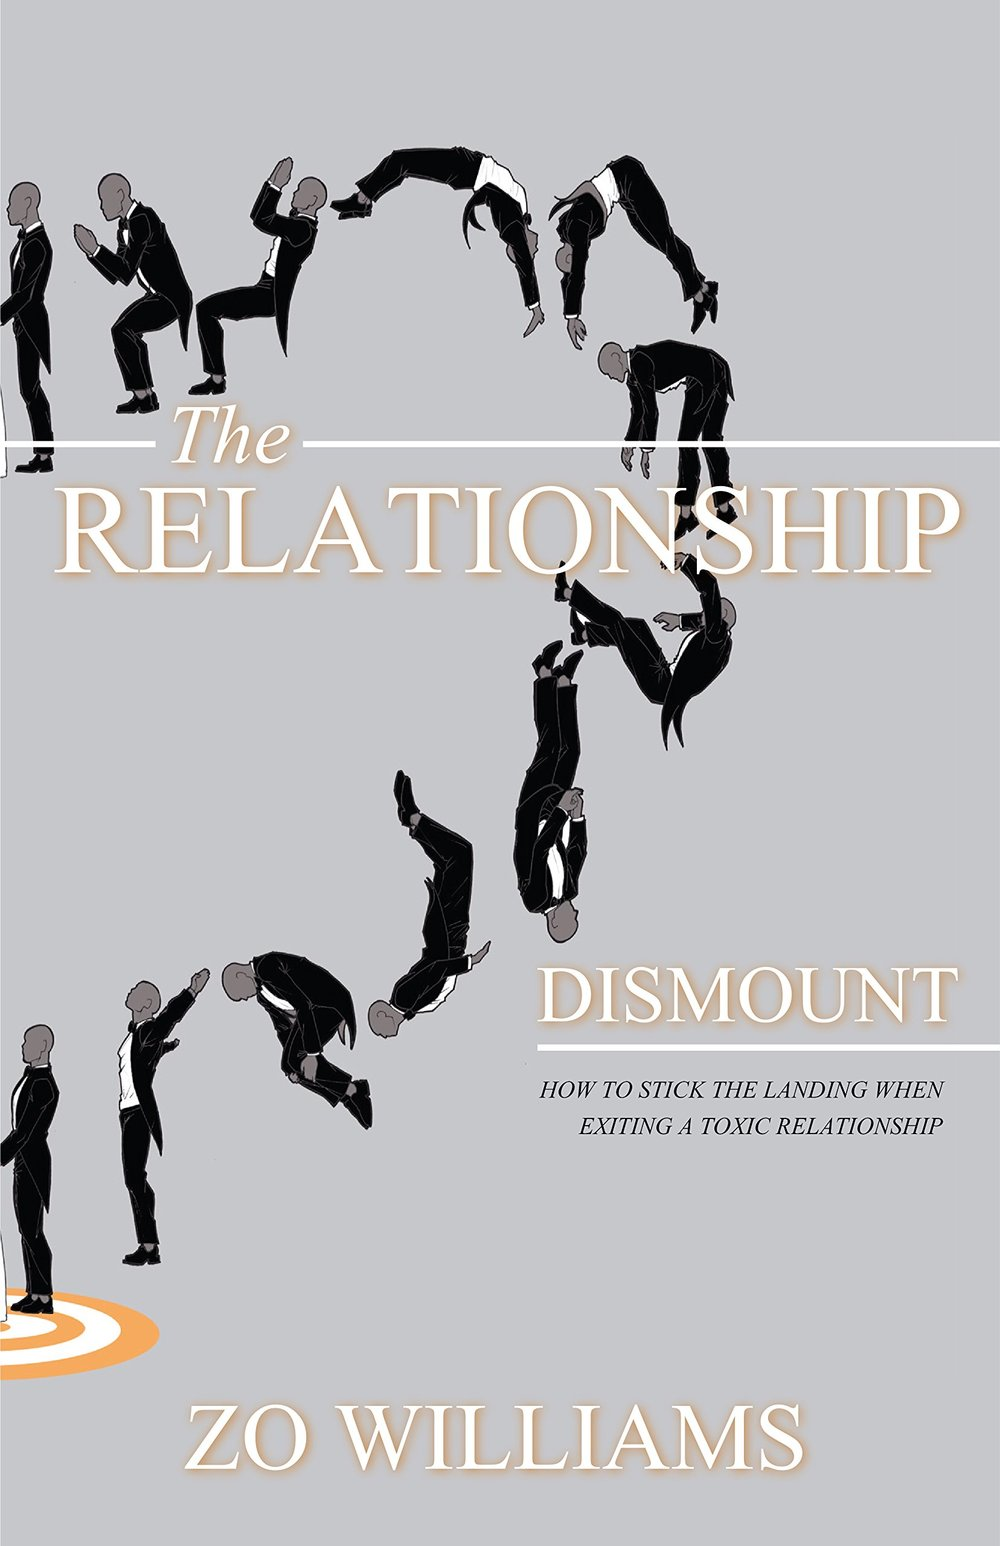 Great The Relationship Dismount